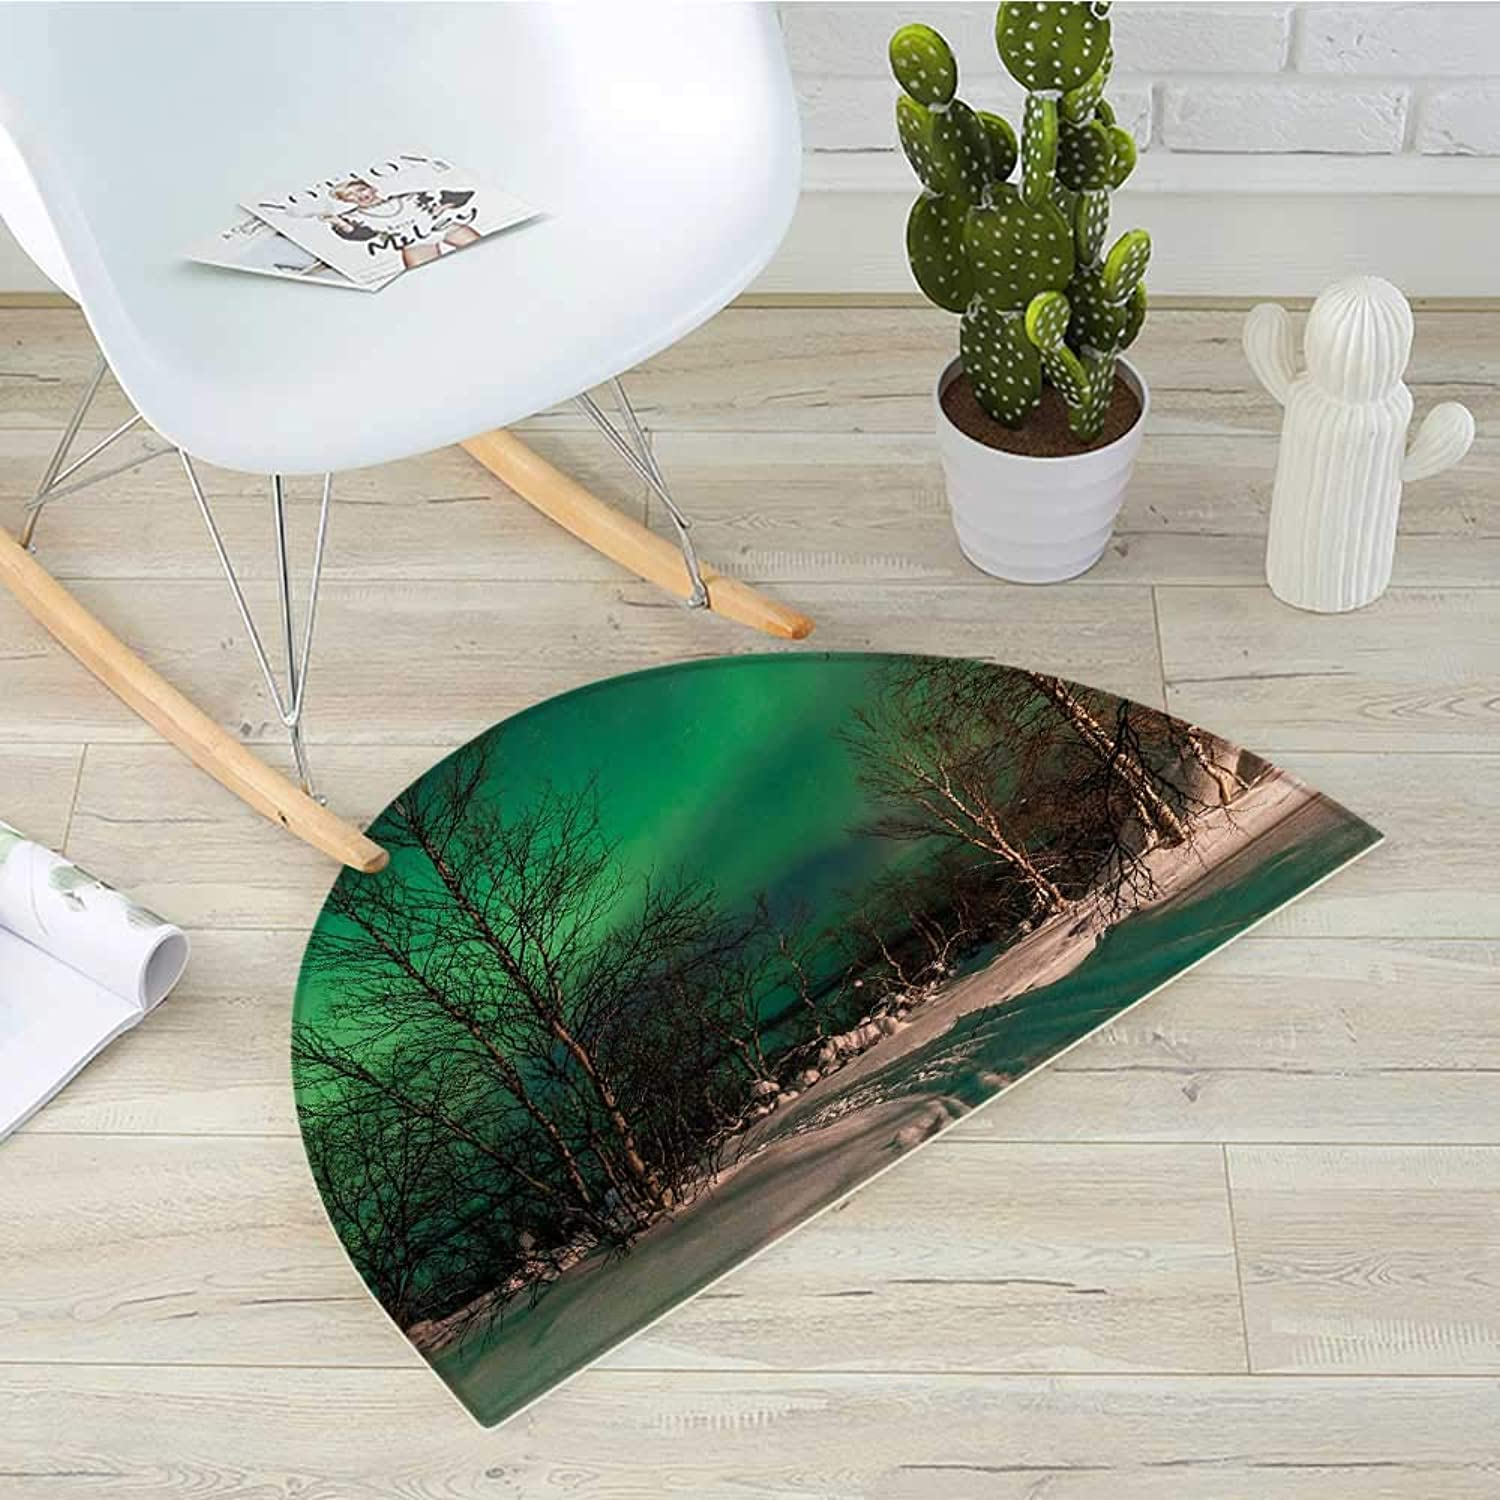 Northern Lights Half Round Door mats Snowy Frozen Road Path Between Leafless Trees Finland Park Bathroom Mat H 39.3  xD 59  Jade Green Brown White